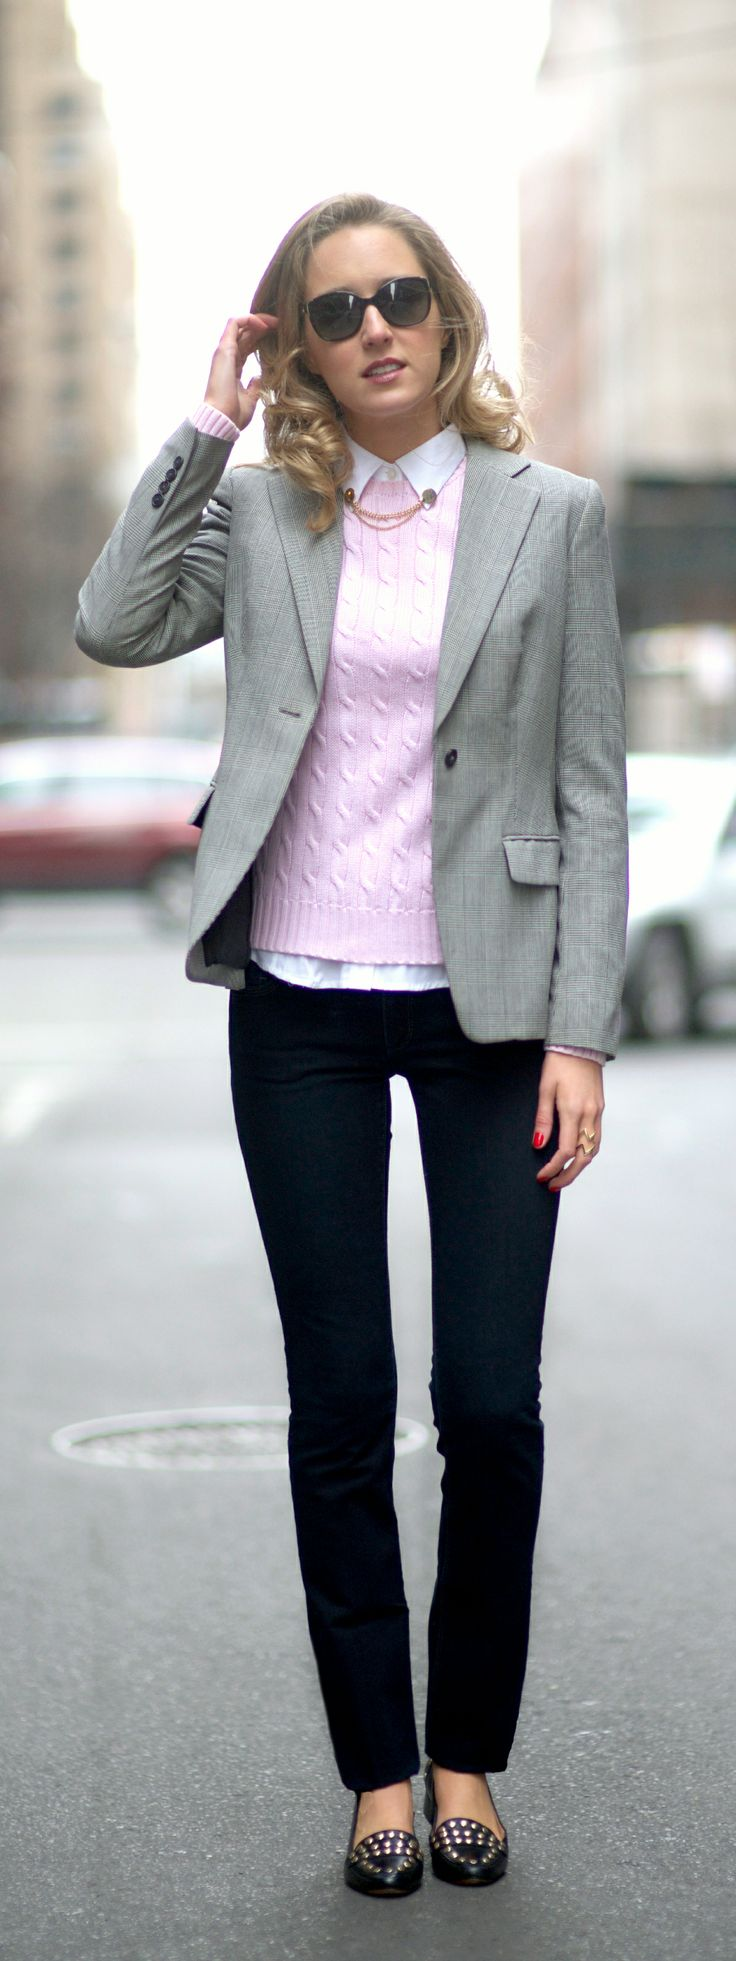 casual friday || houndstooth suit jacket, black jeans, pink cable knit sweater, collar tips, monogram ring, dvf studded loafers